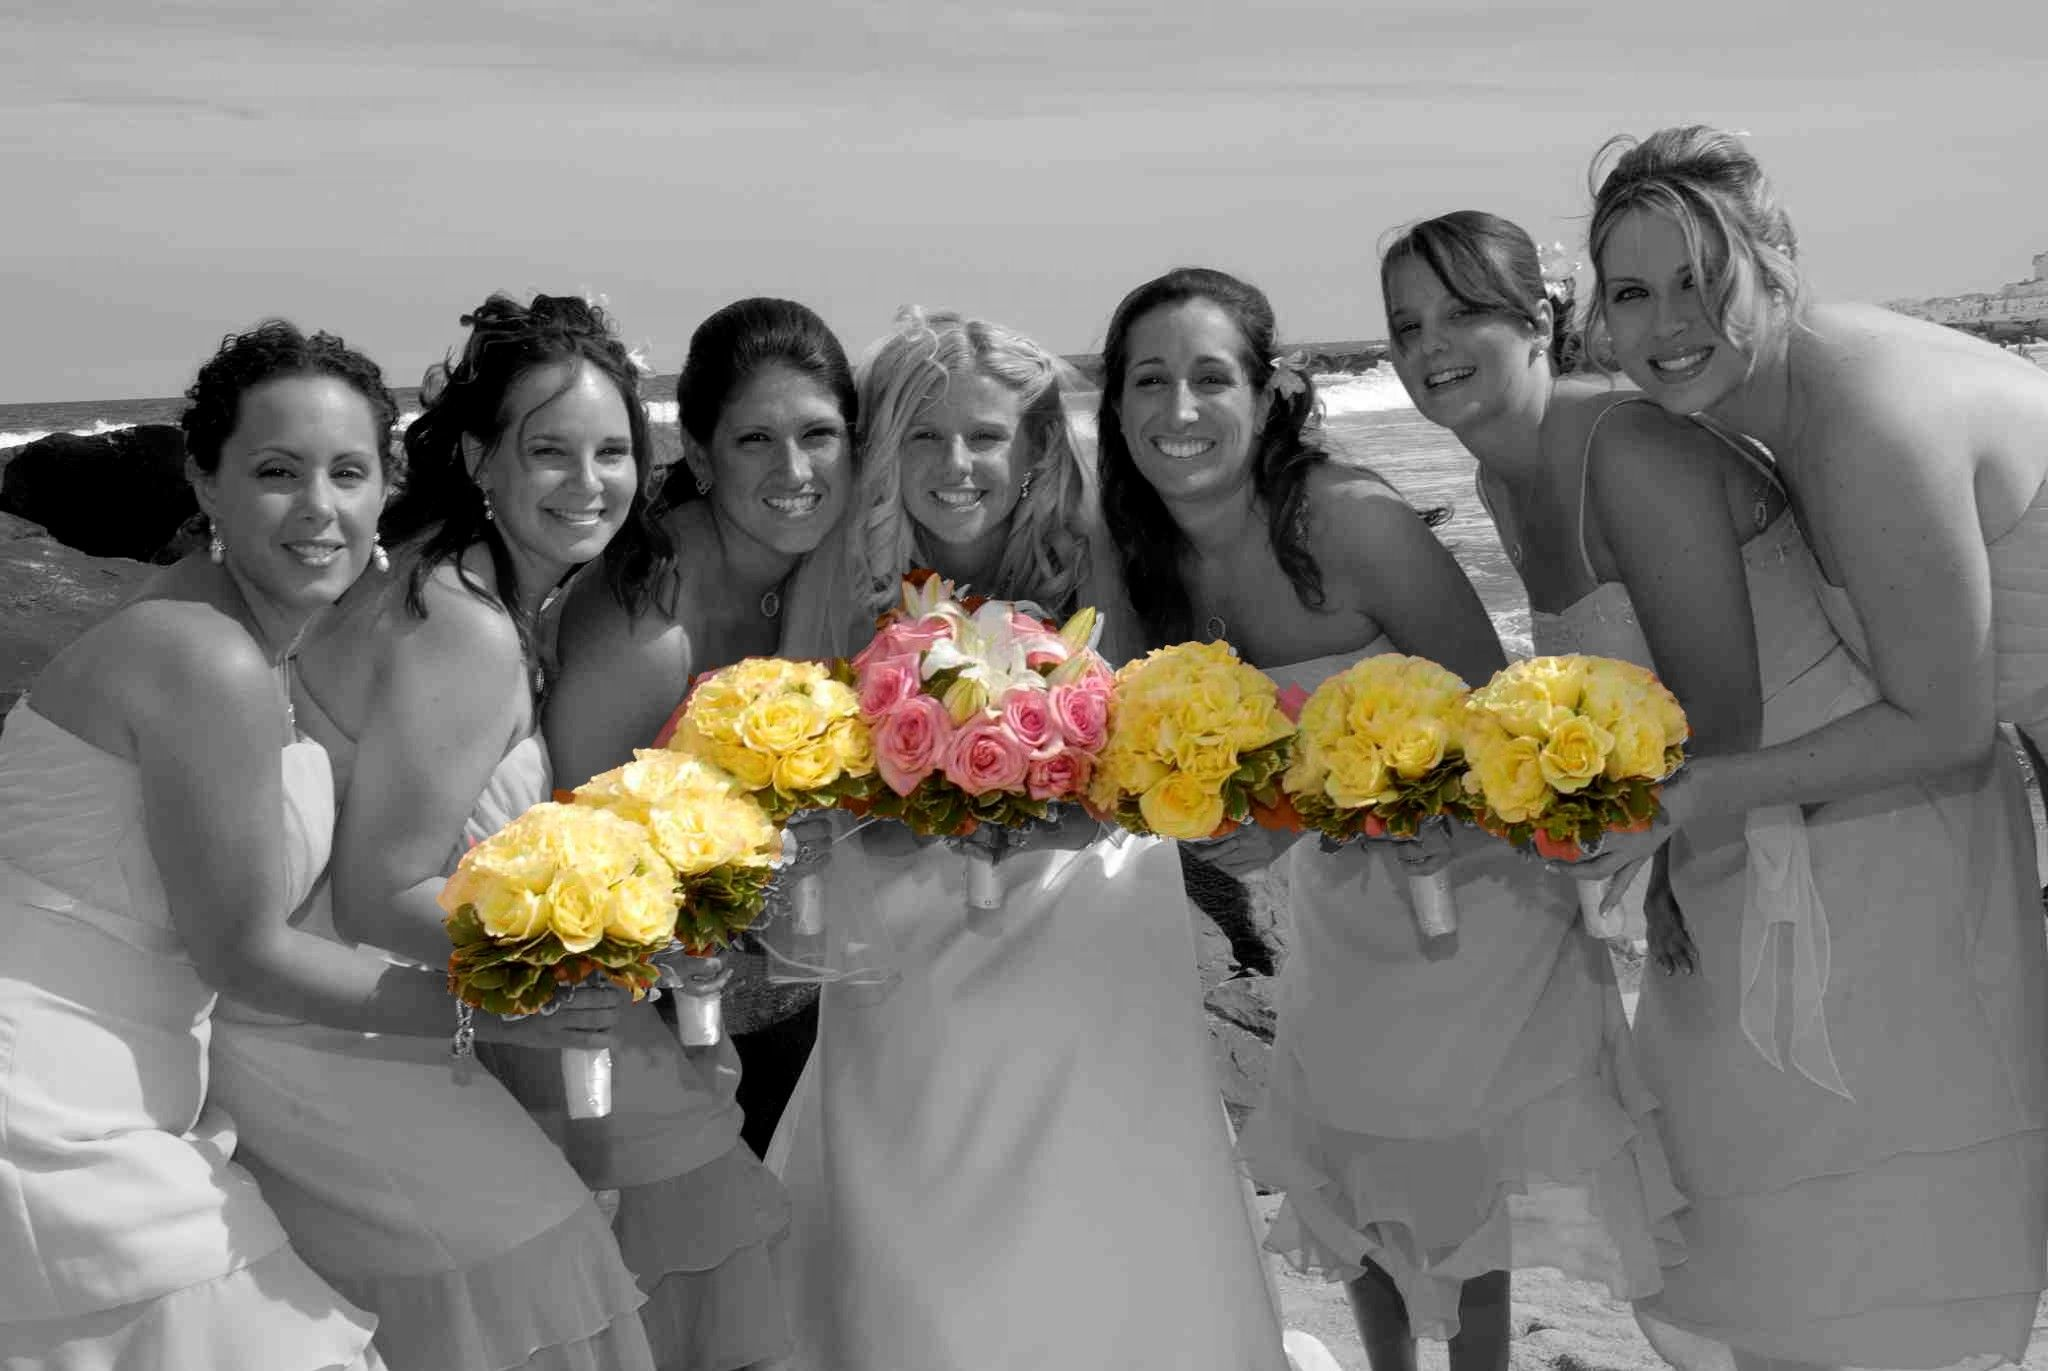 Prestige Weddings Center Inc Has Been Serving Brides And Grooms In The New York Metropolitan Area For Over 43 Years Bridesmaid Bride Bridesmaid Dresses